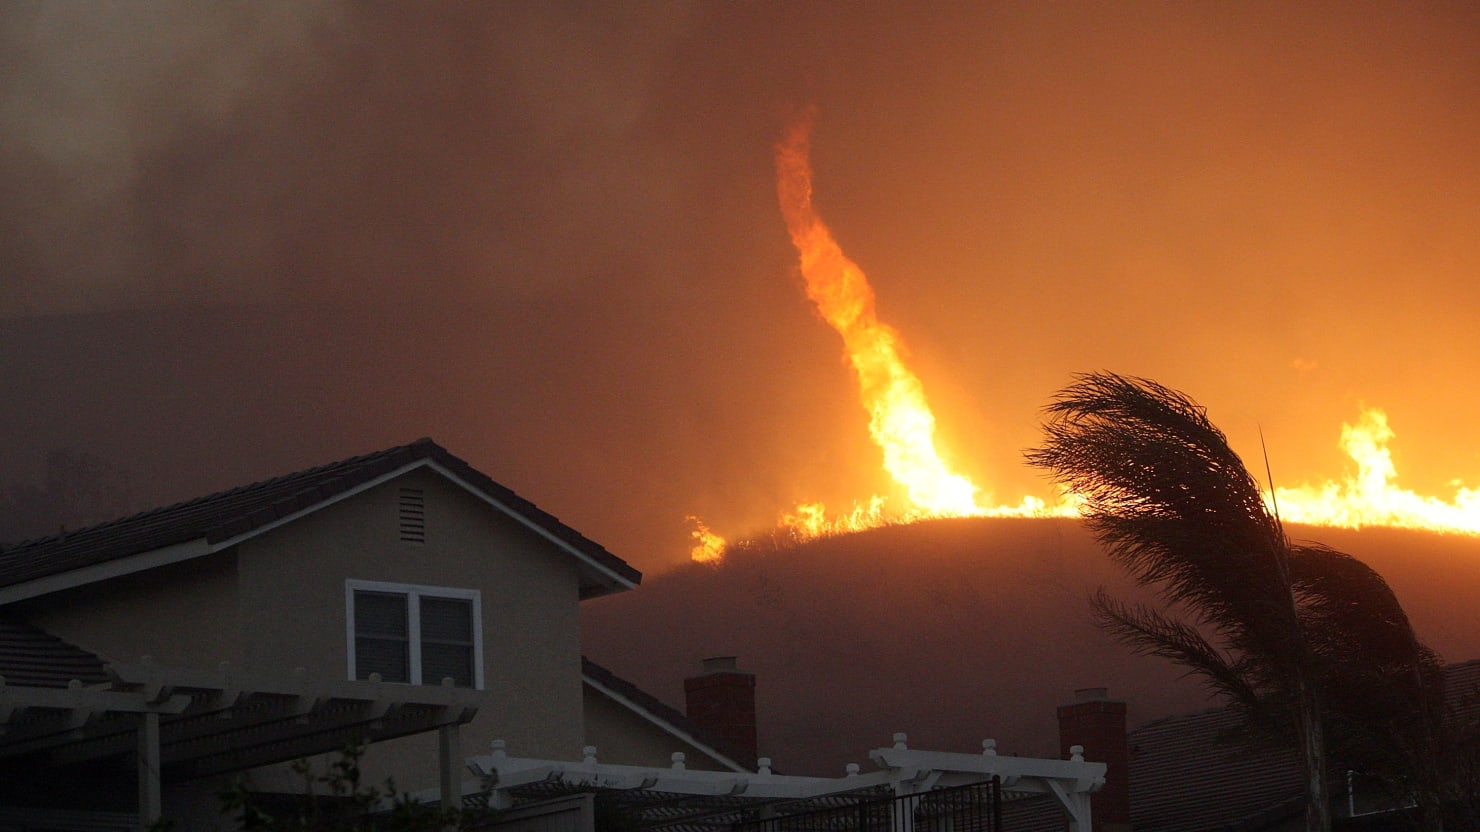 'Firenado' warning in California as out of control wildfires spread